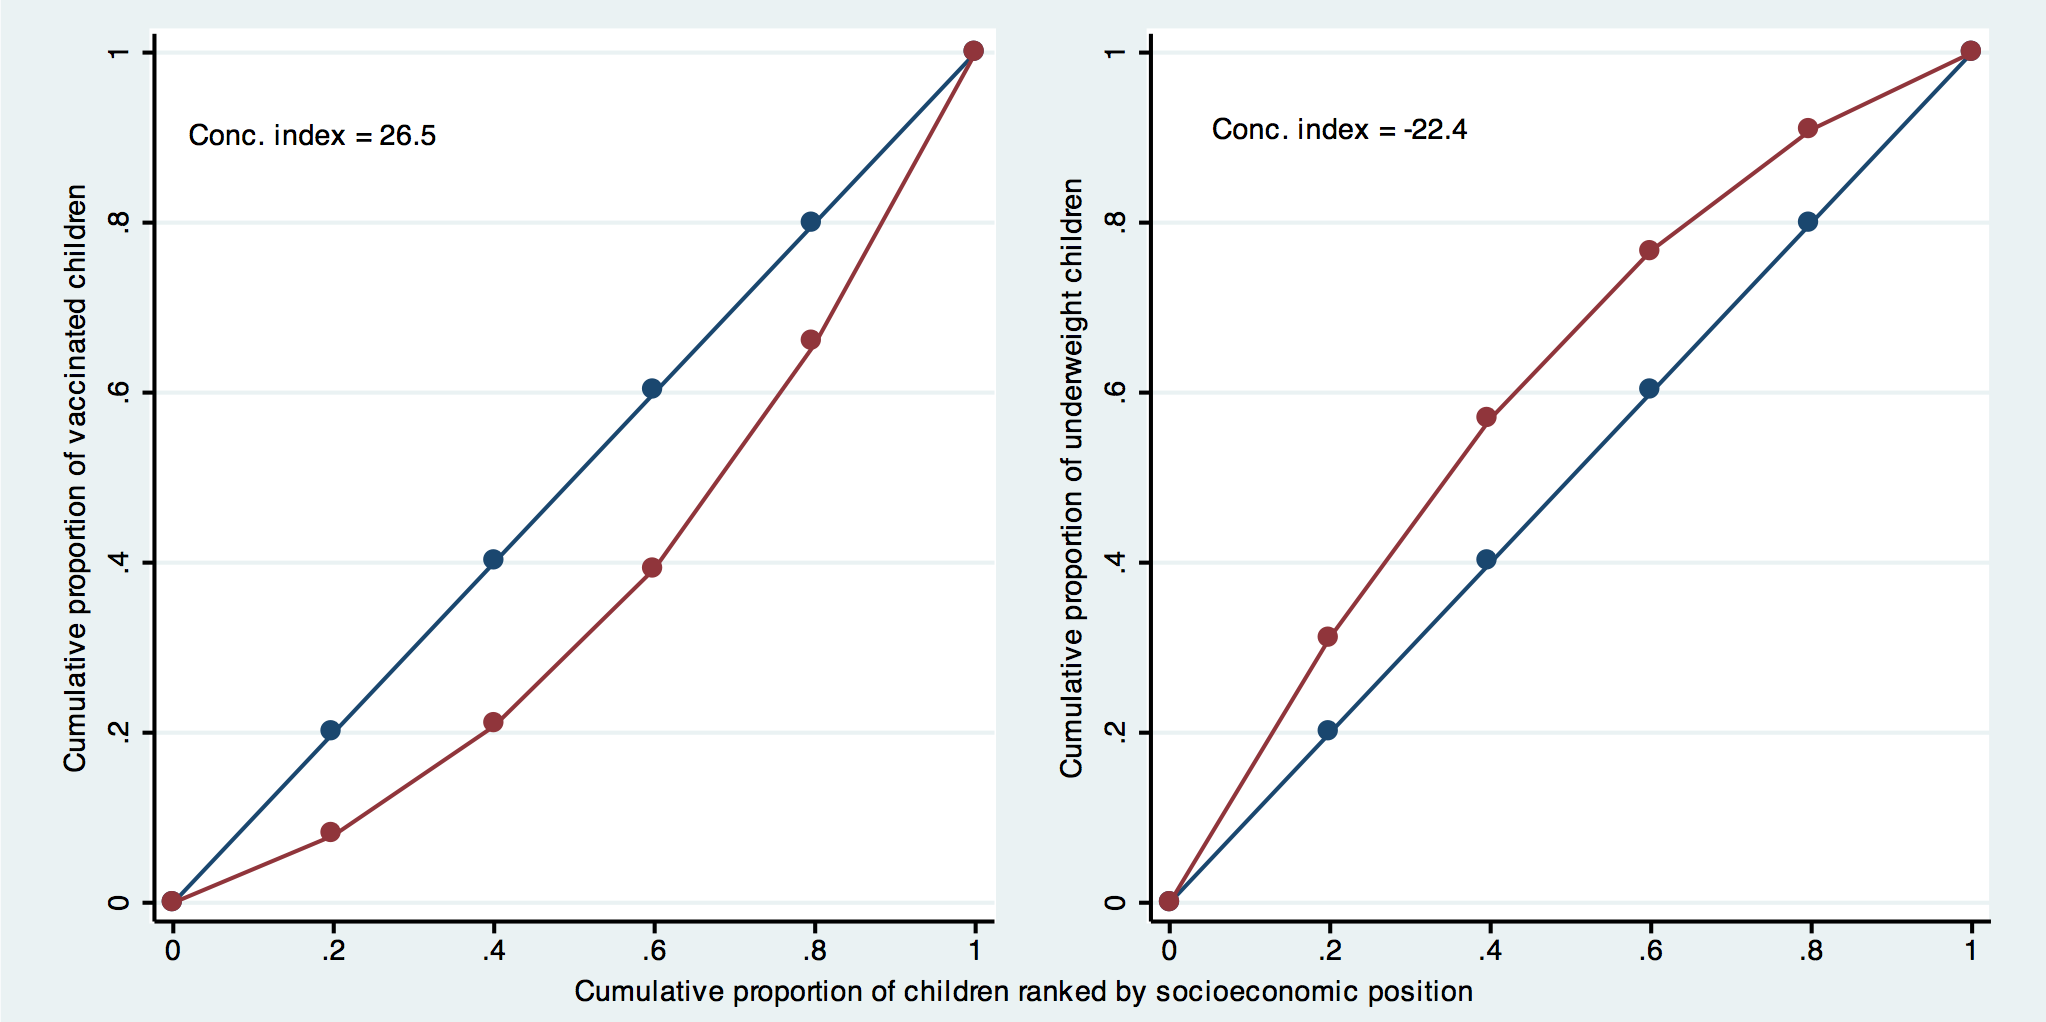 Concentration curve for measles vaccination and underweight using data from the Nigeria 2008 DHS.